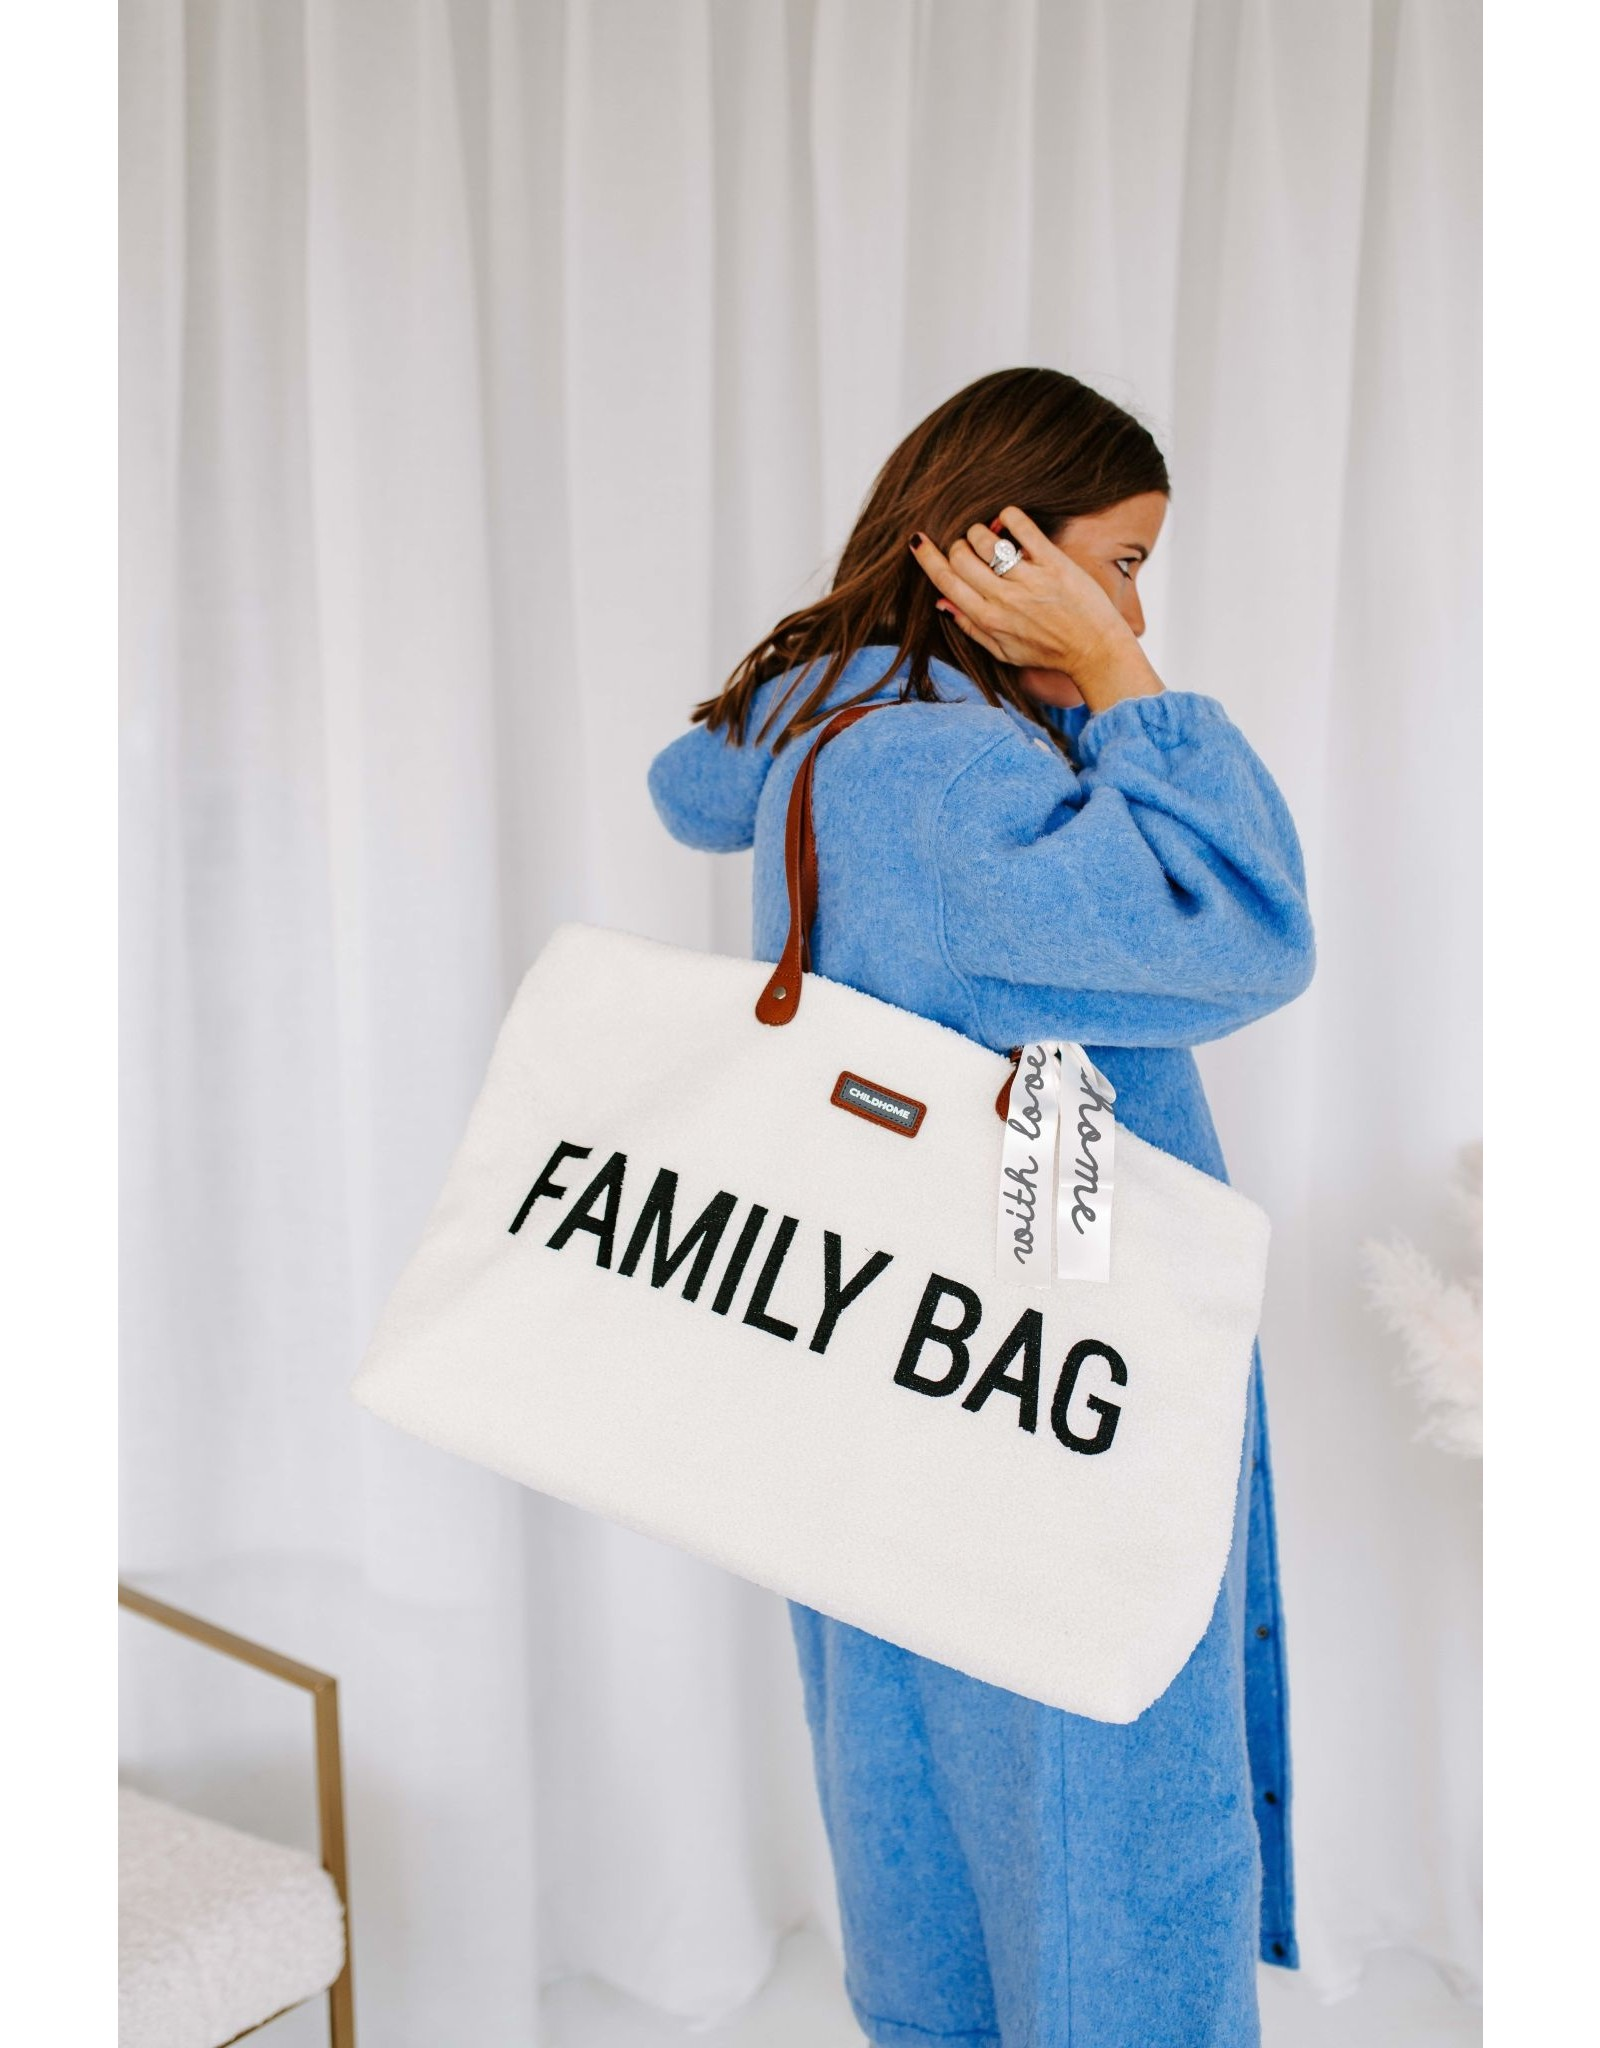 Childhome Family bag Teddy off White